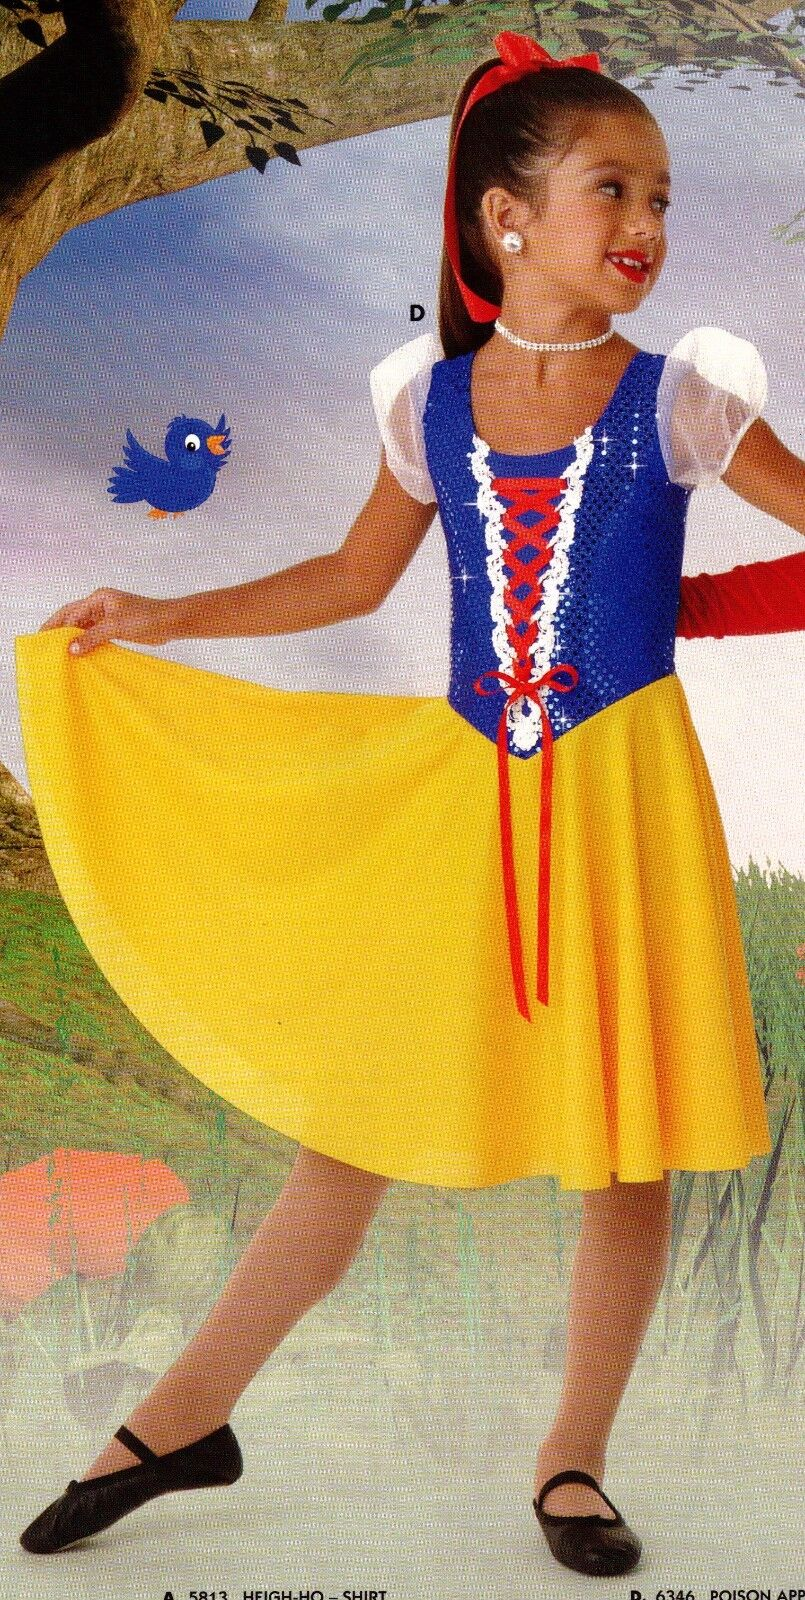 Snow White Dance Costume Girls Sizes Great For Dressup Or...